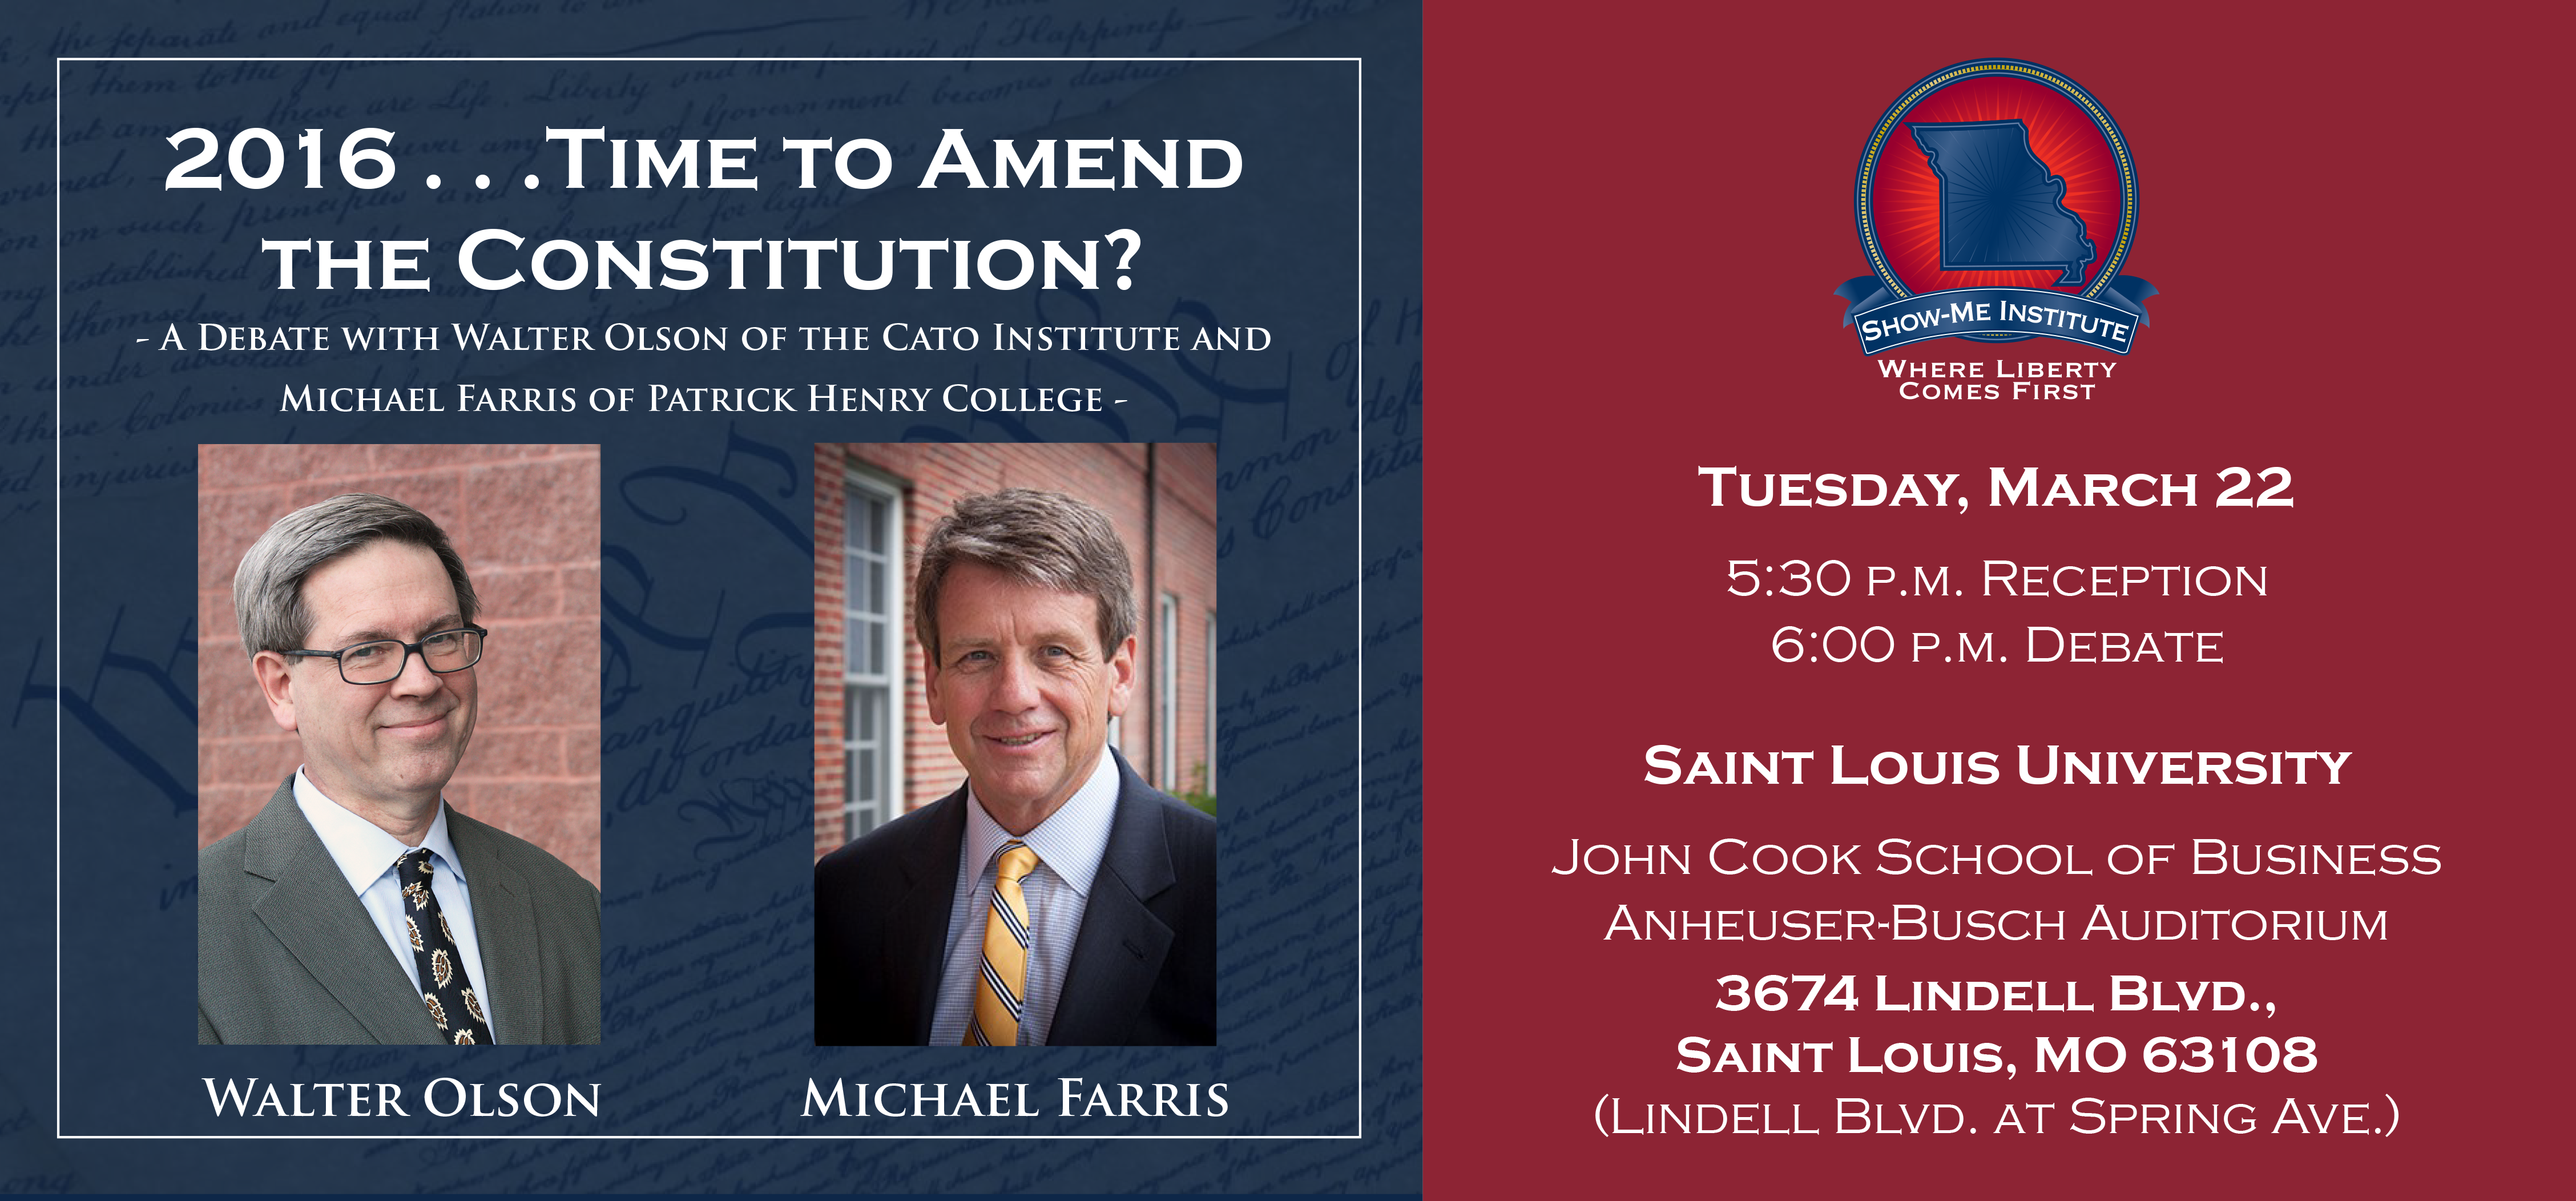 2016 . . . Time to Amend the Constitution? | Show-Me Institute